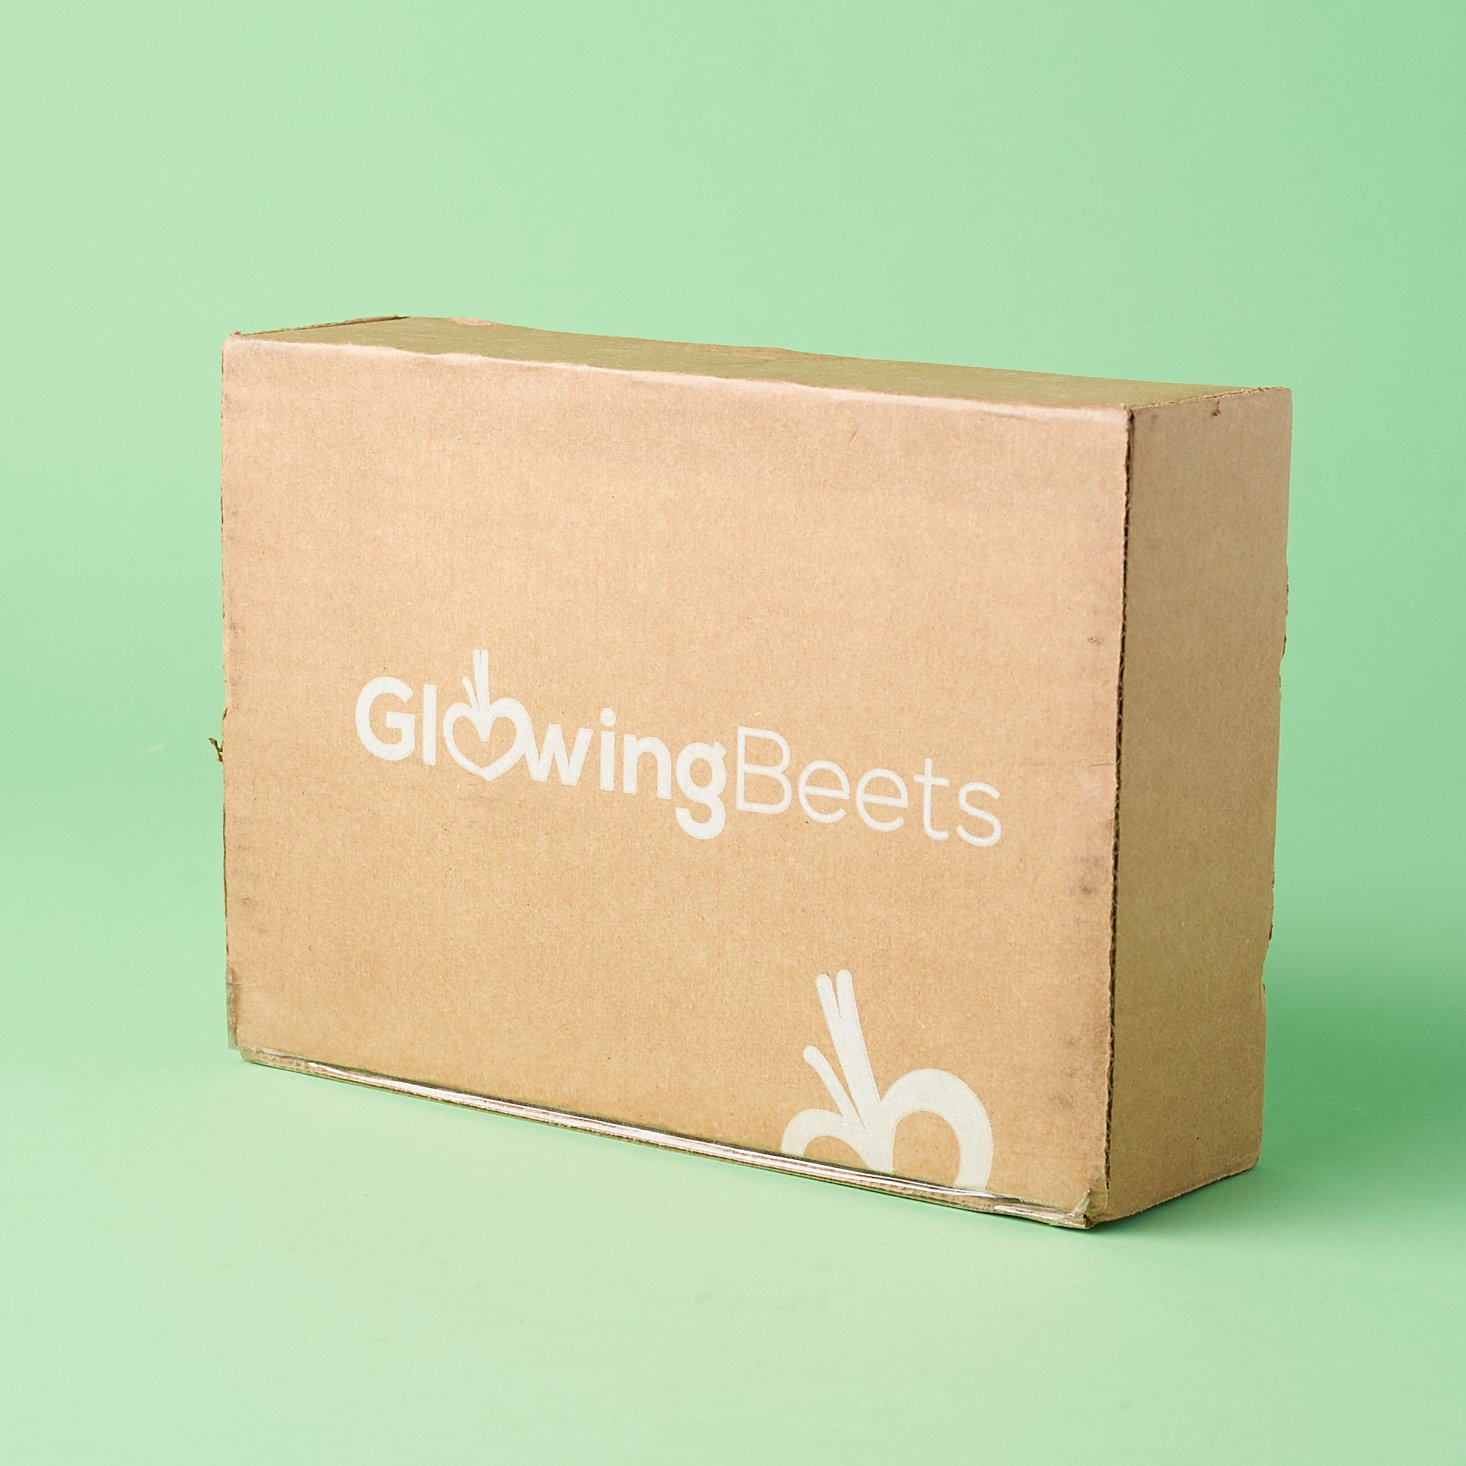 Glowing-beets-march-2017-0001